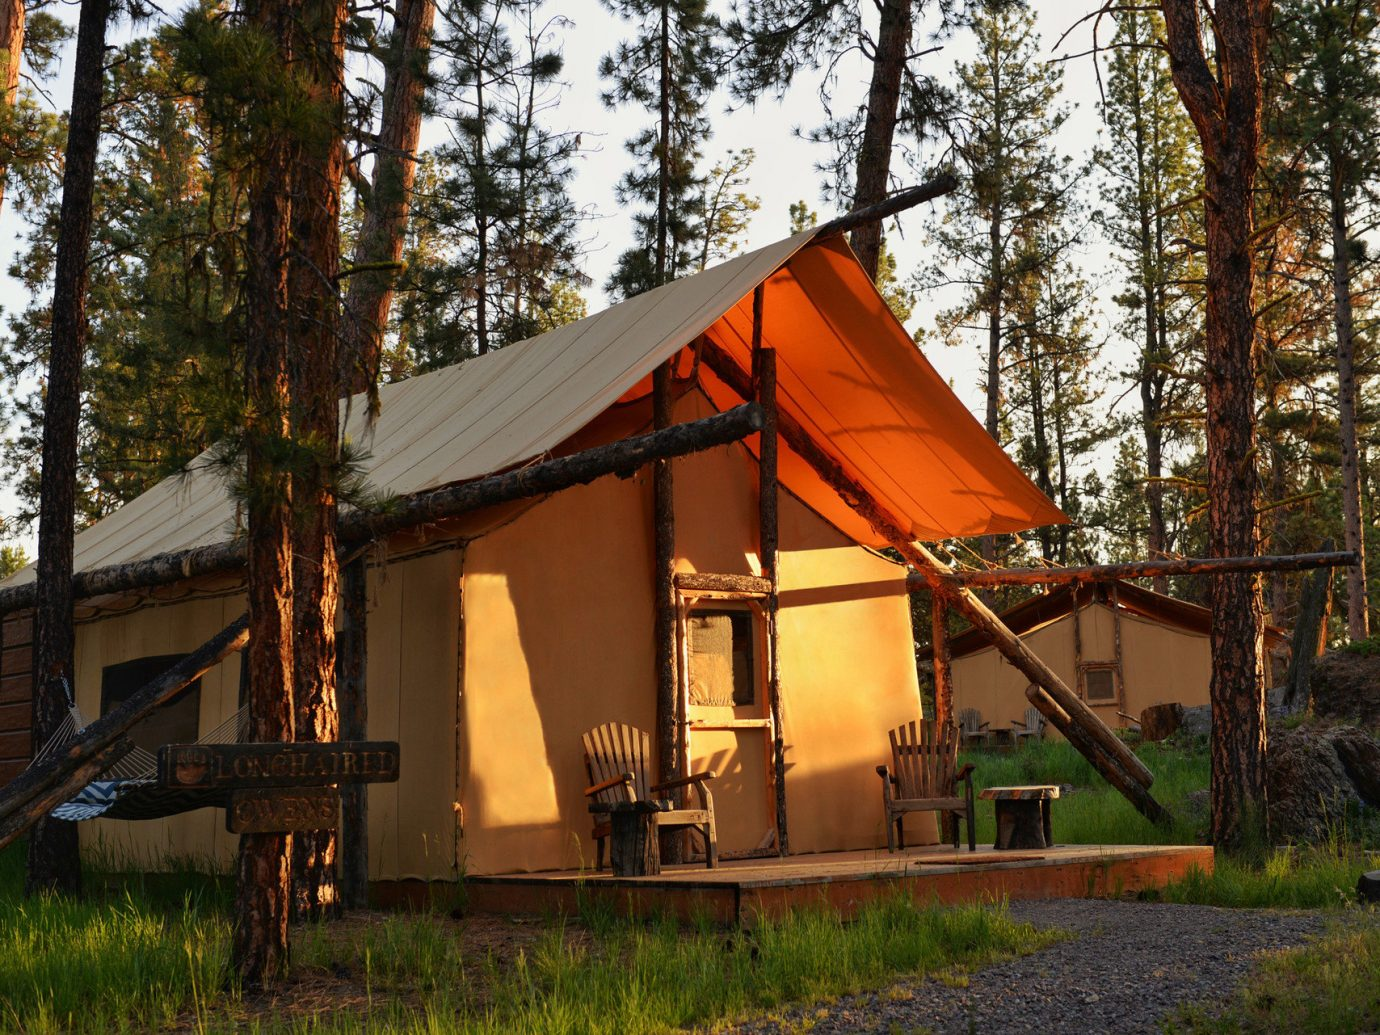 Road Trips Trip Ideas tree outdoor grass house log cabin building home hut shack cottage rural area estate outdoor structure several